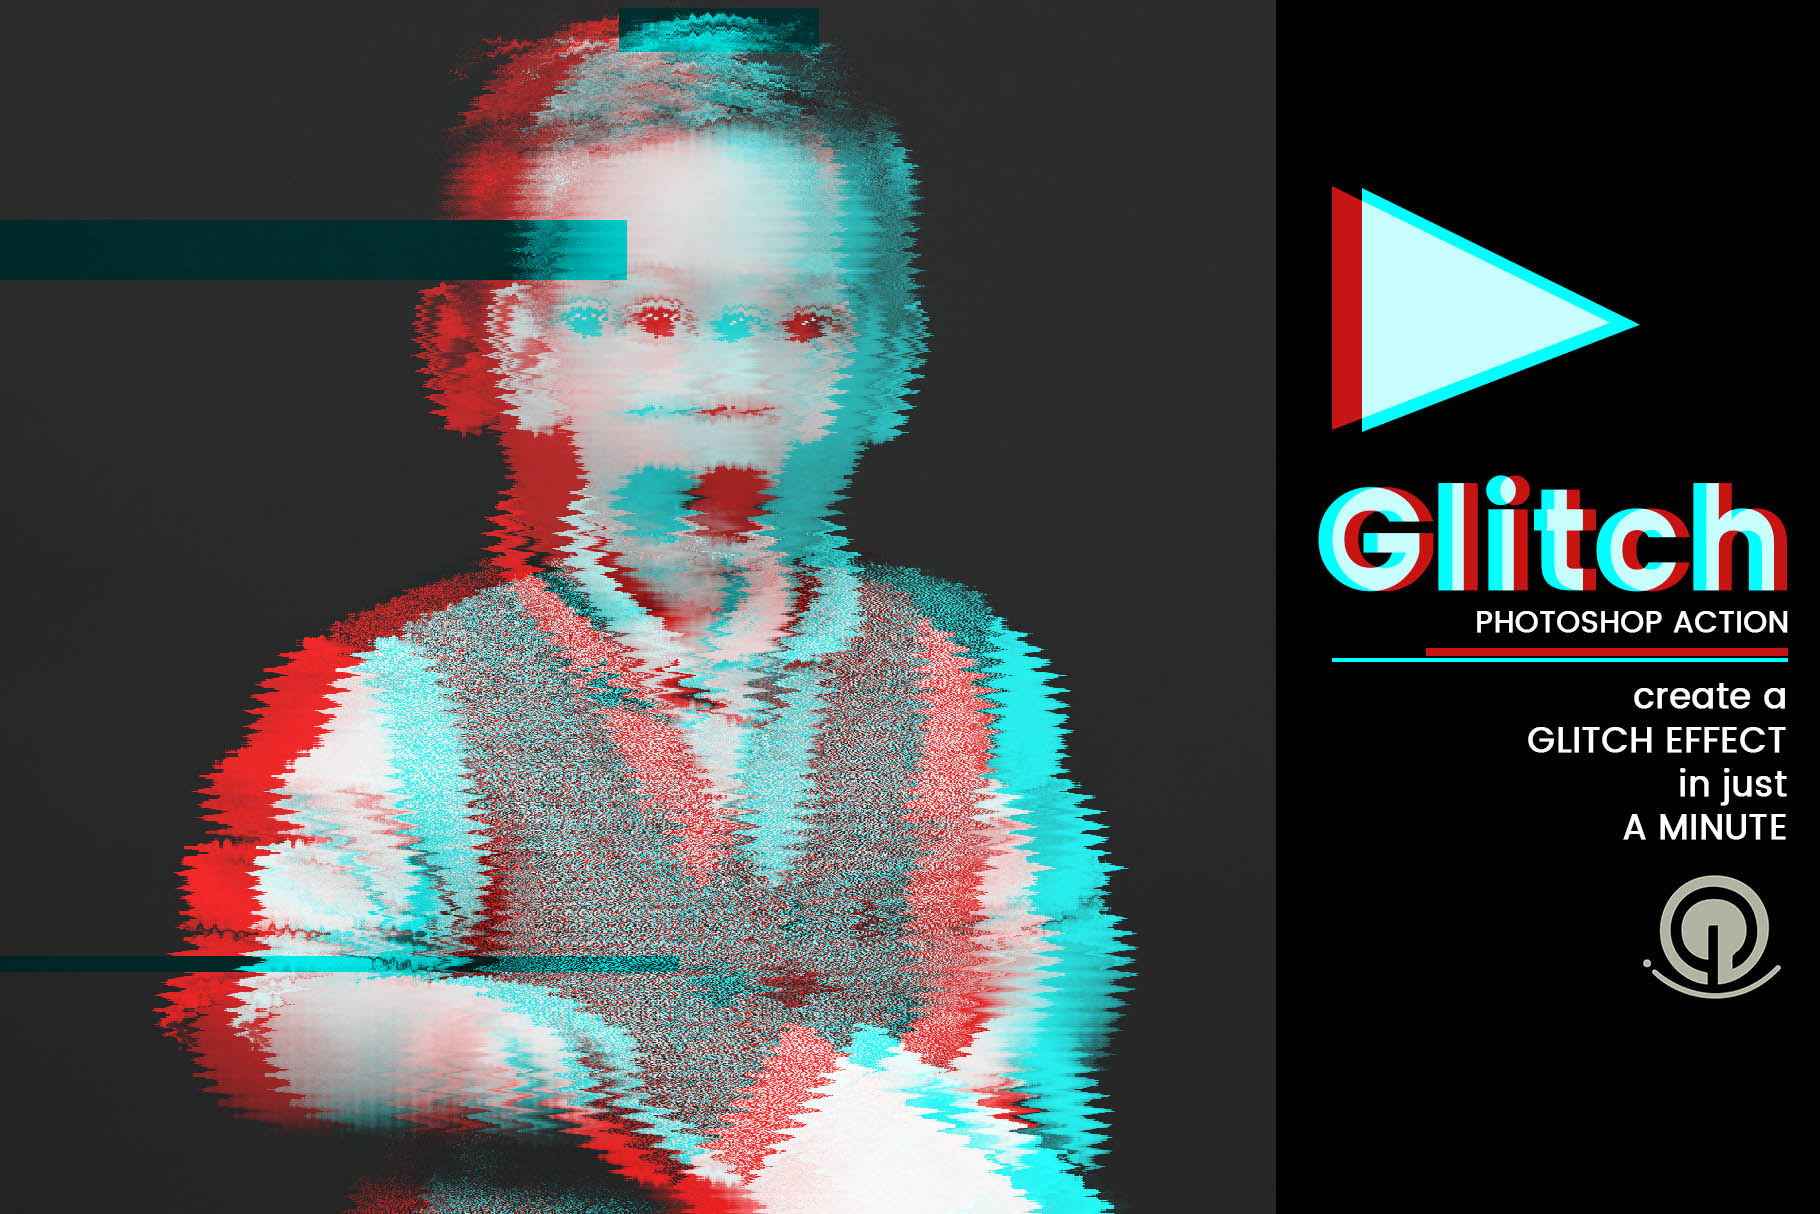 Glitch Photoshop Action Graphic Actions & Presets By gumacreative - Image 4